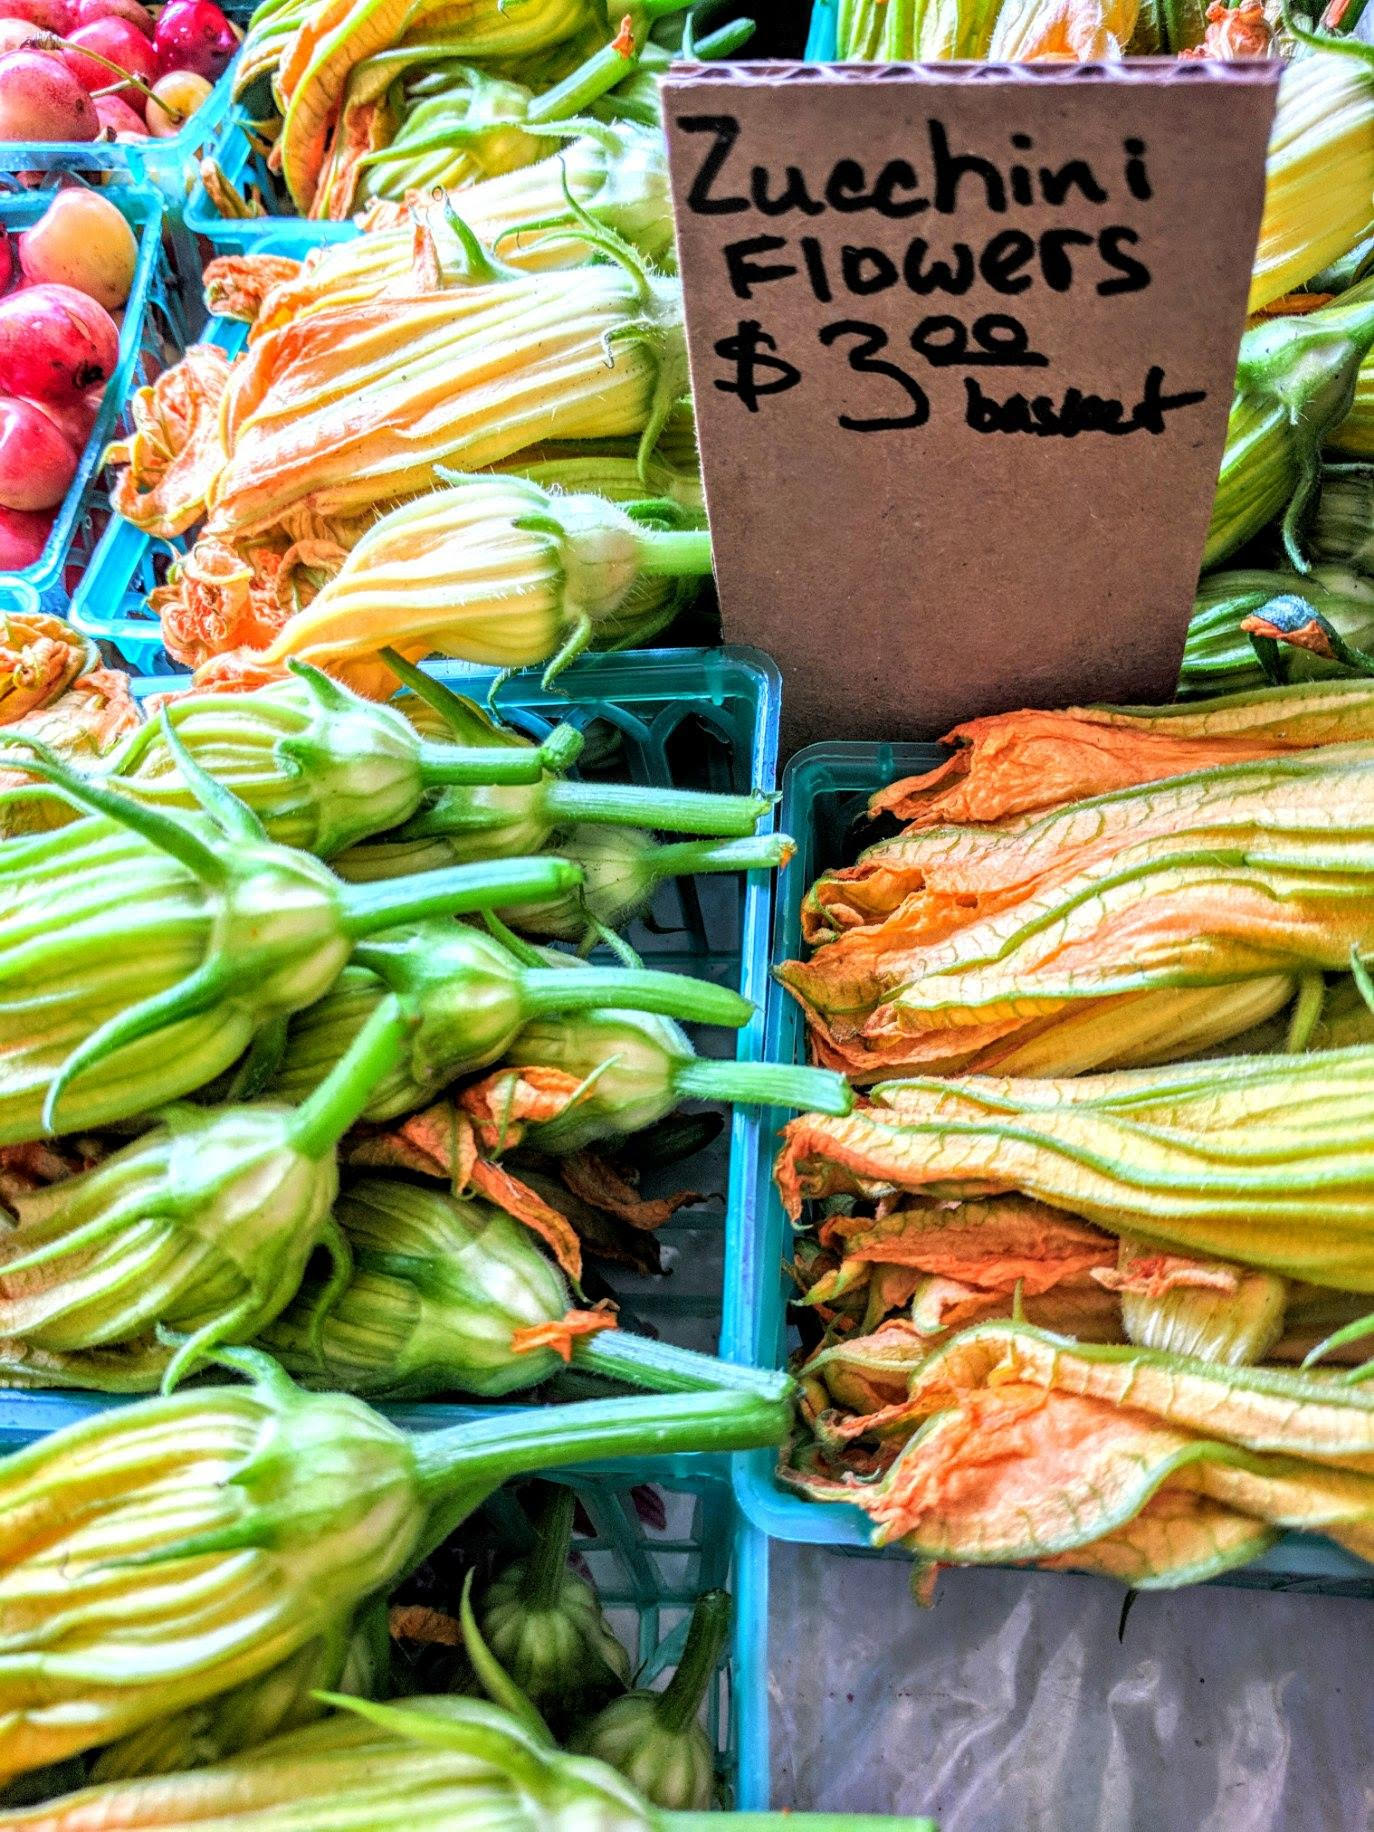 zucchini flowers in baskets at farmers market